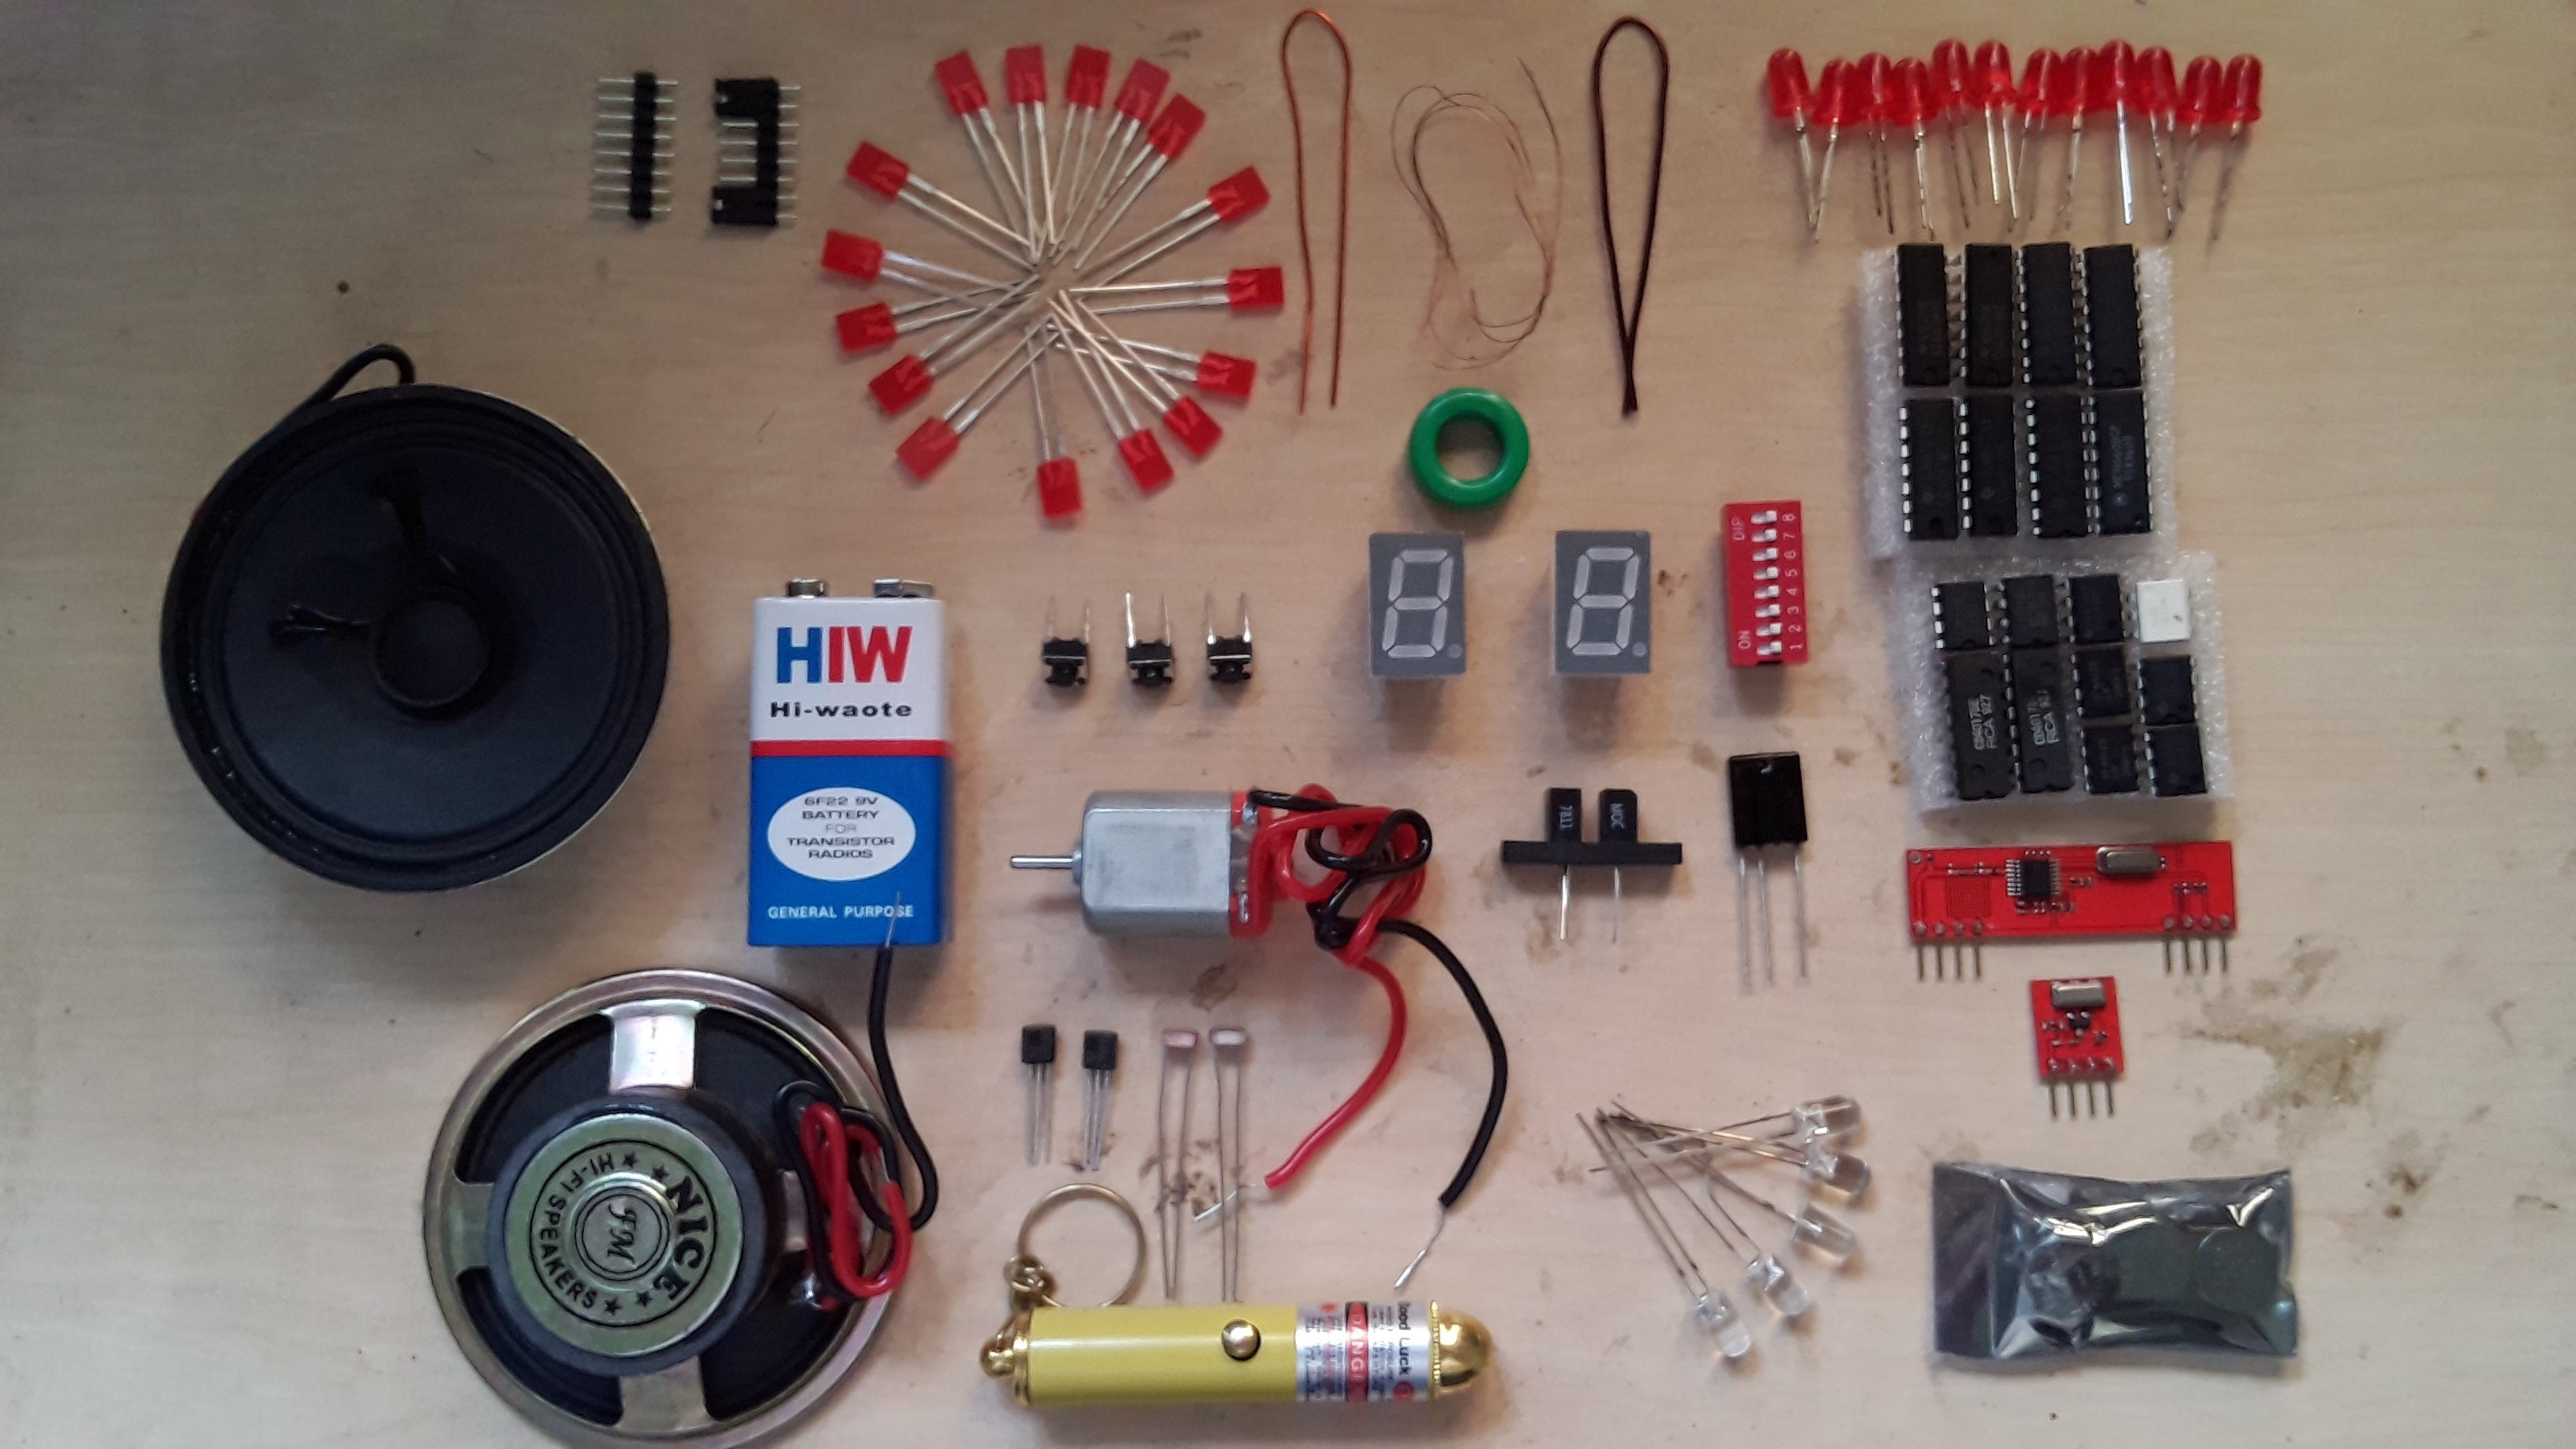 Chip Talk Electronics Components Based Diy Kit From Kitsnspares Review Symbol Piezo Speaker Schematic Circuit Microphone Pre